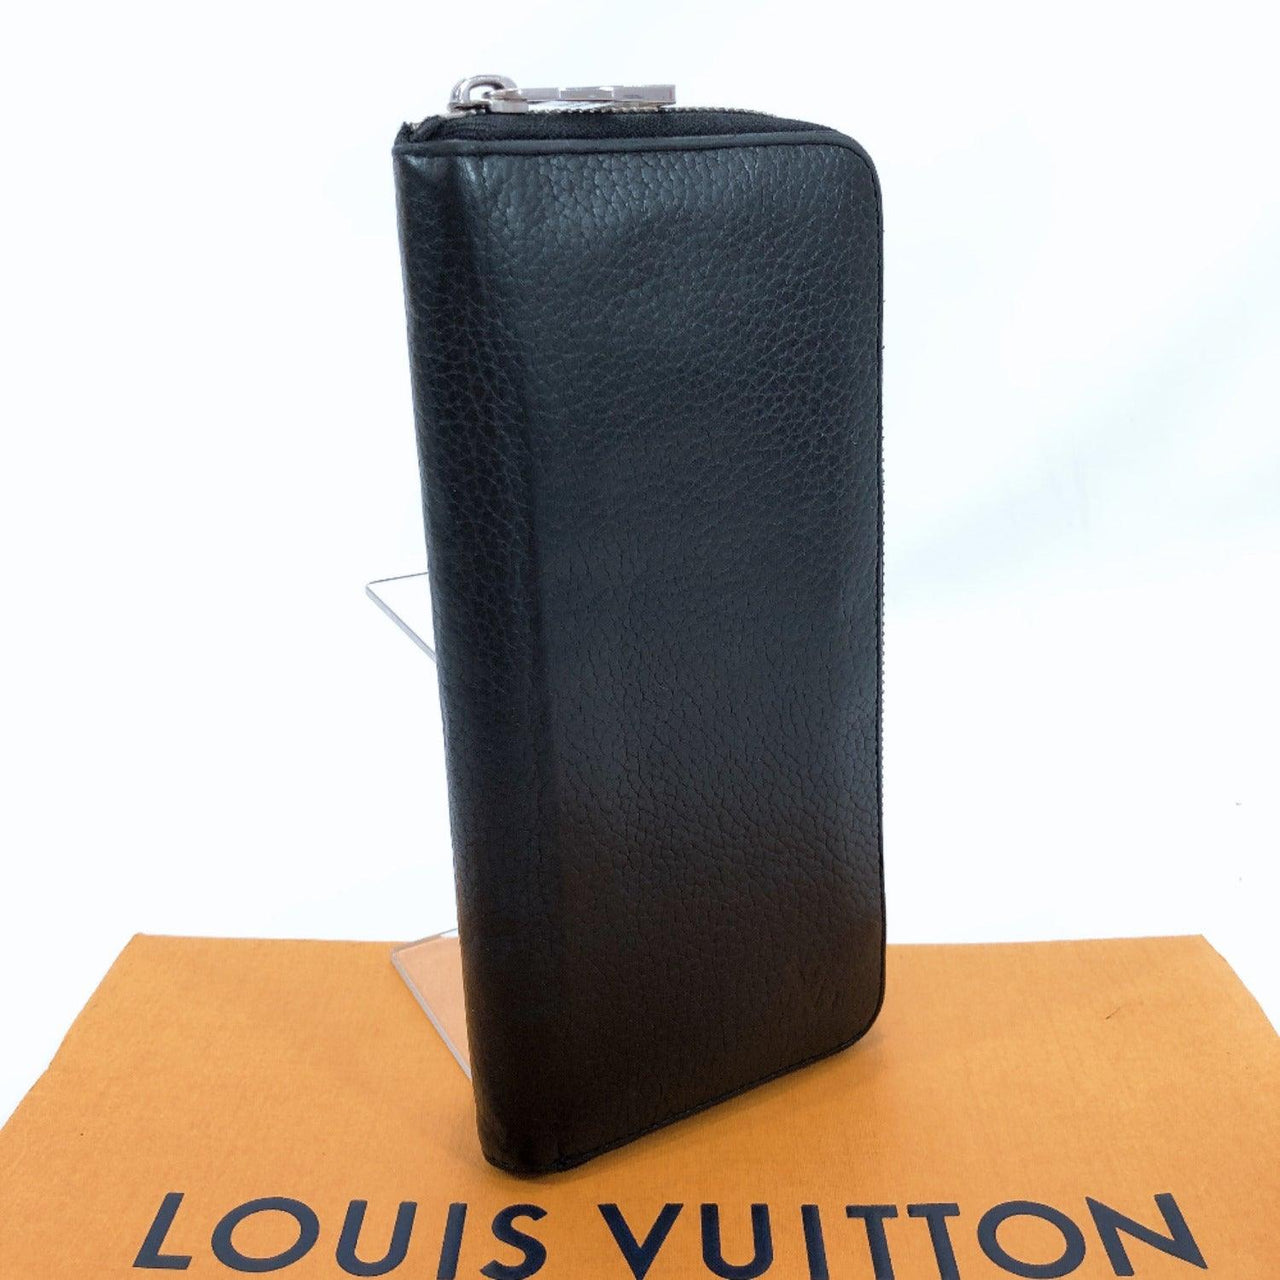 LOUIS VUITTON purse M58412 Zippy Wallet Vertical/Taurillon Clemence Leather black mens Used